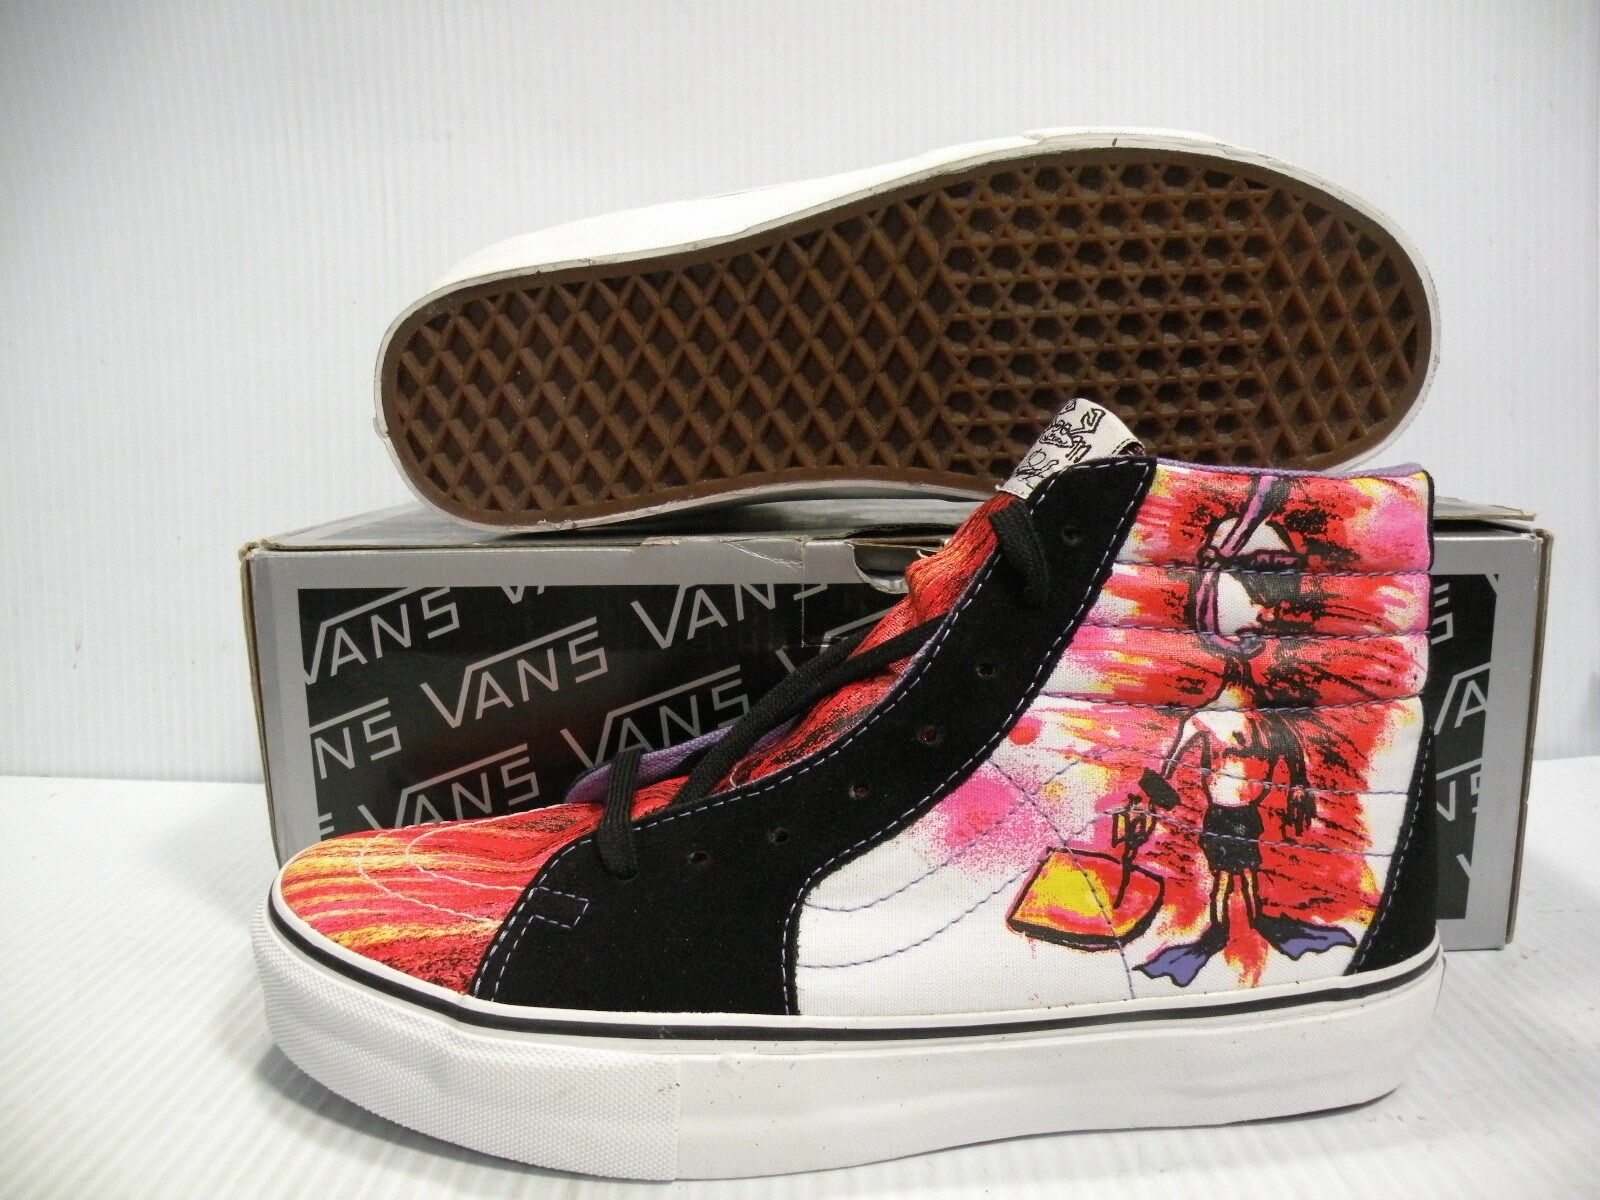 VANS SK8 HI VAULT BOOGIE Tuba toile hommes chaussures 5894299 Noir Taille 9 NEUF